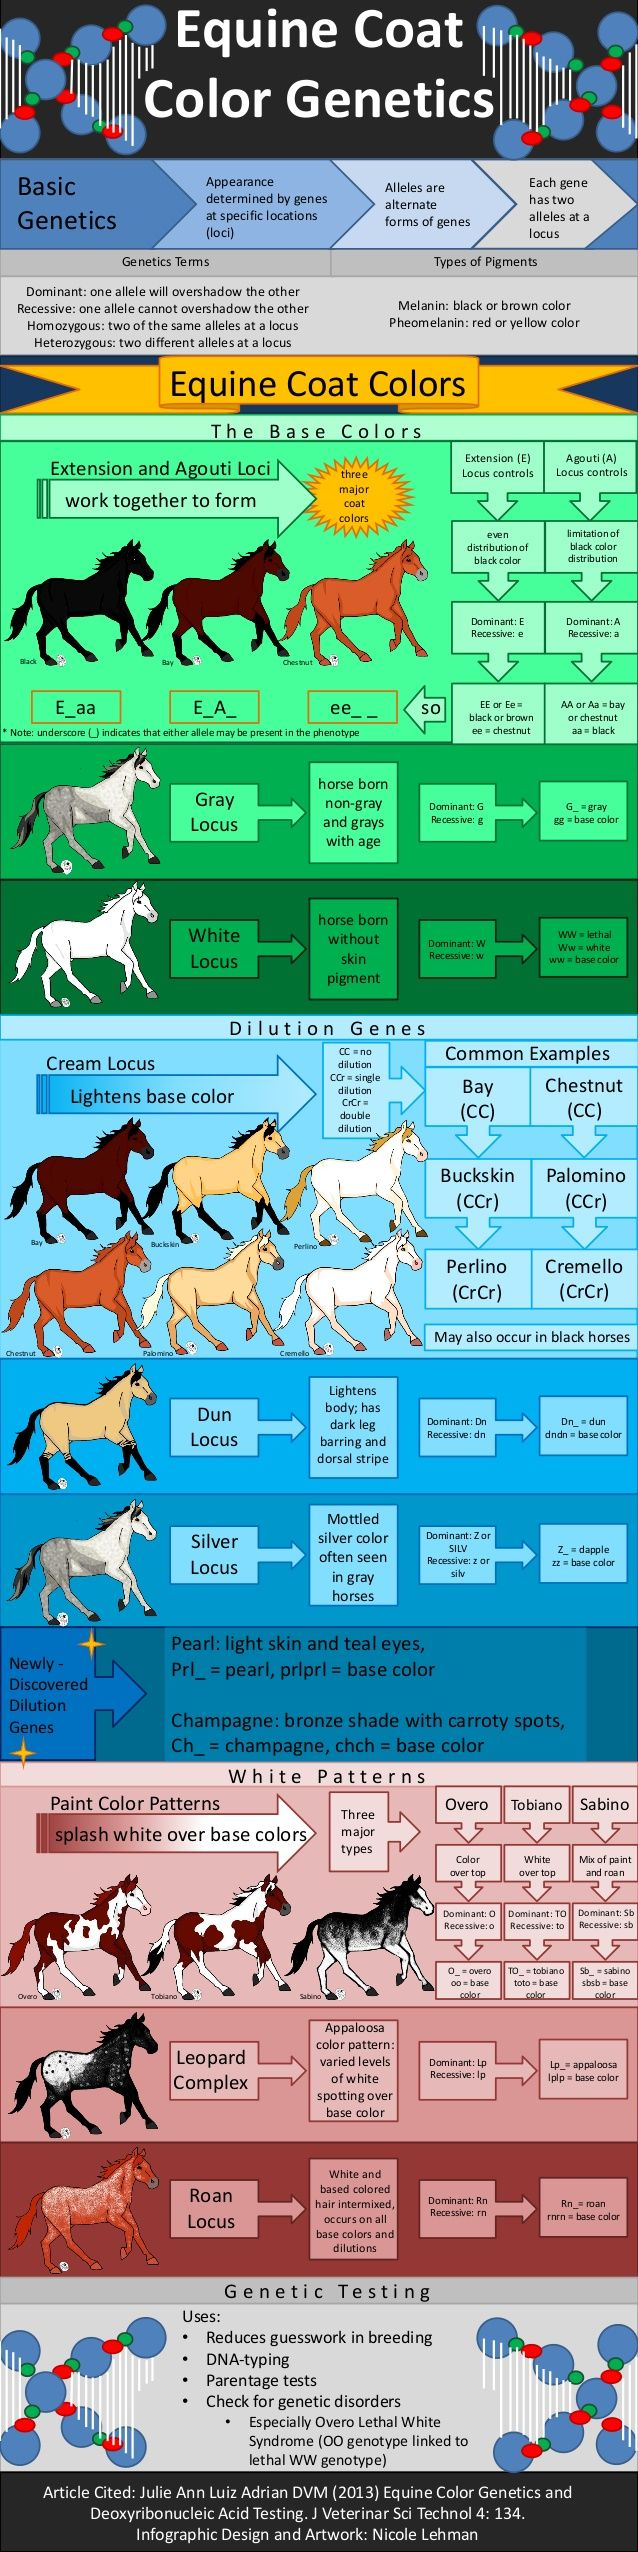 Equine coat color genetics genetics terms types of pigments equine coat color genetics genetics terms types of pigments dominant one allele will overshadow the nvjuhfo Choice Image